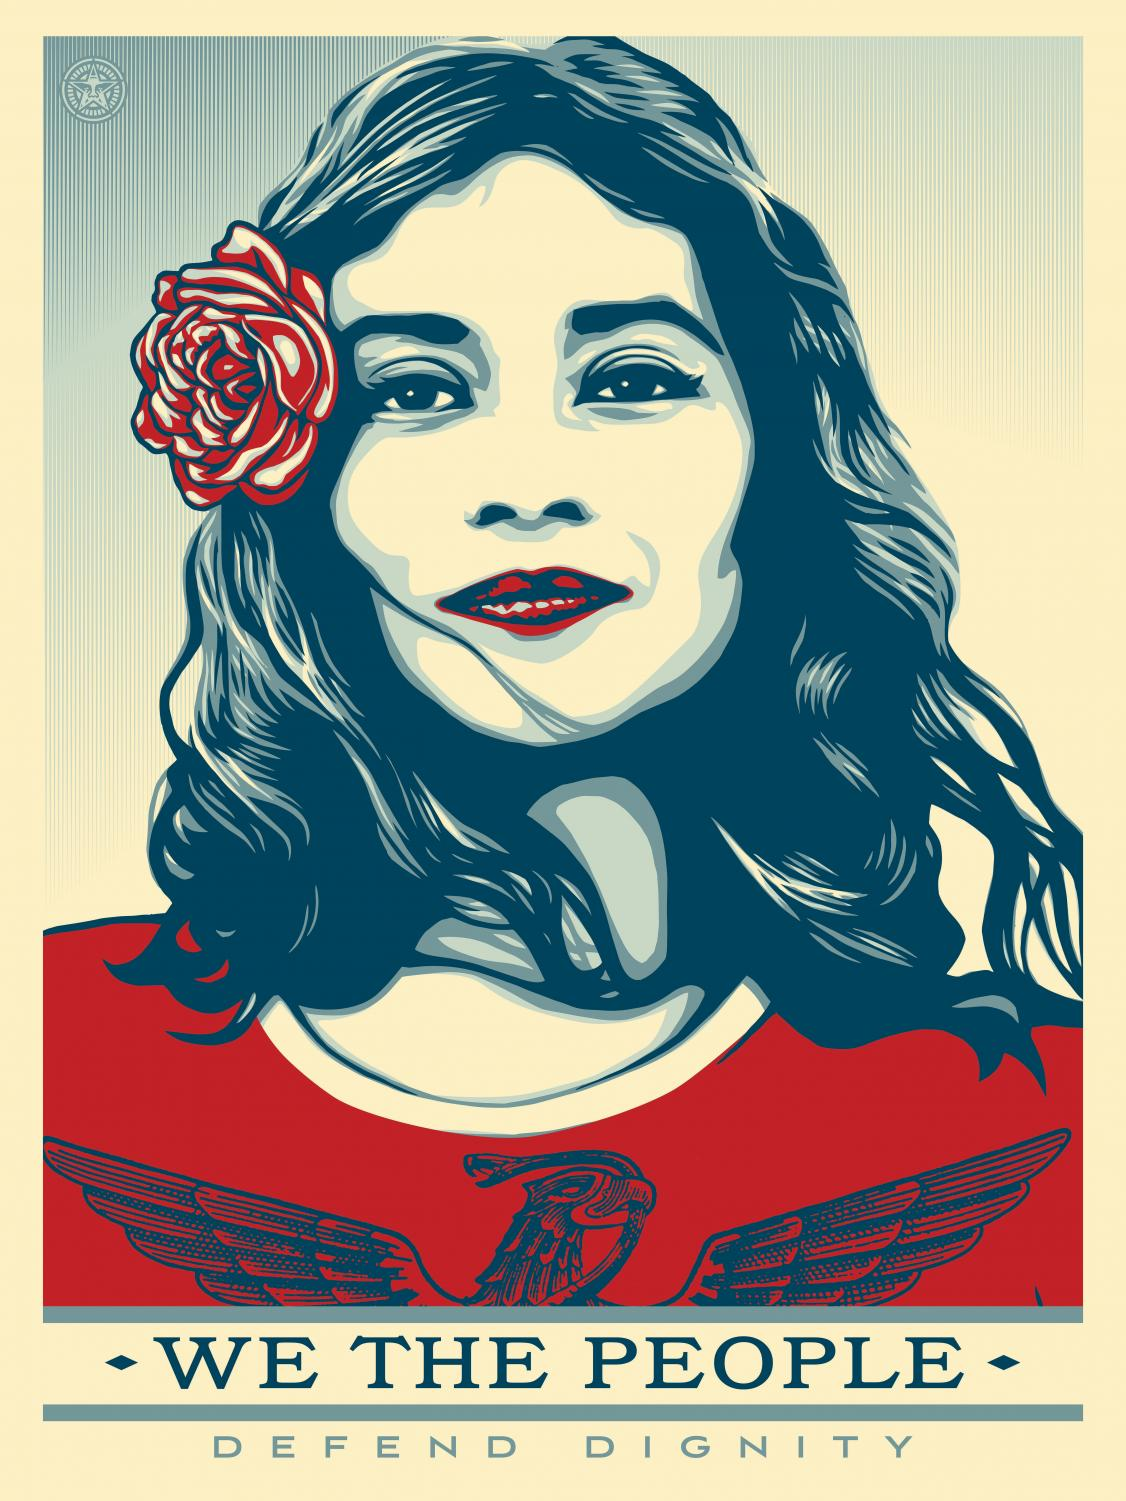 Illustration by Shepard Fairey from the We The People campaign.